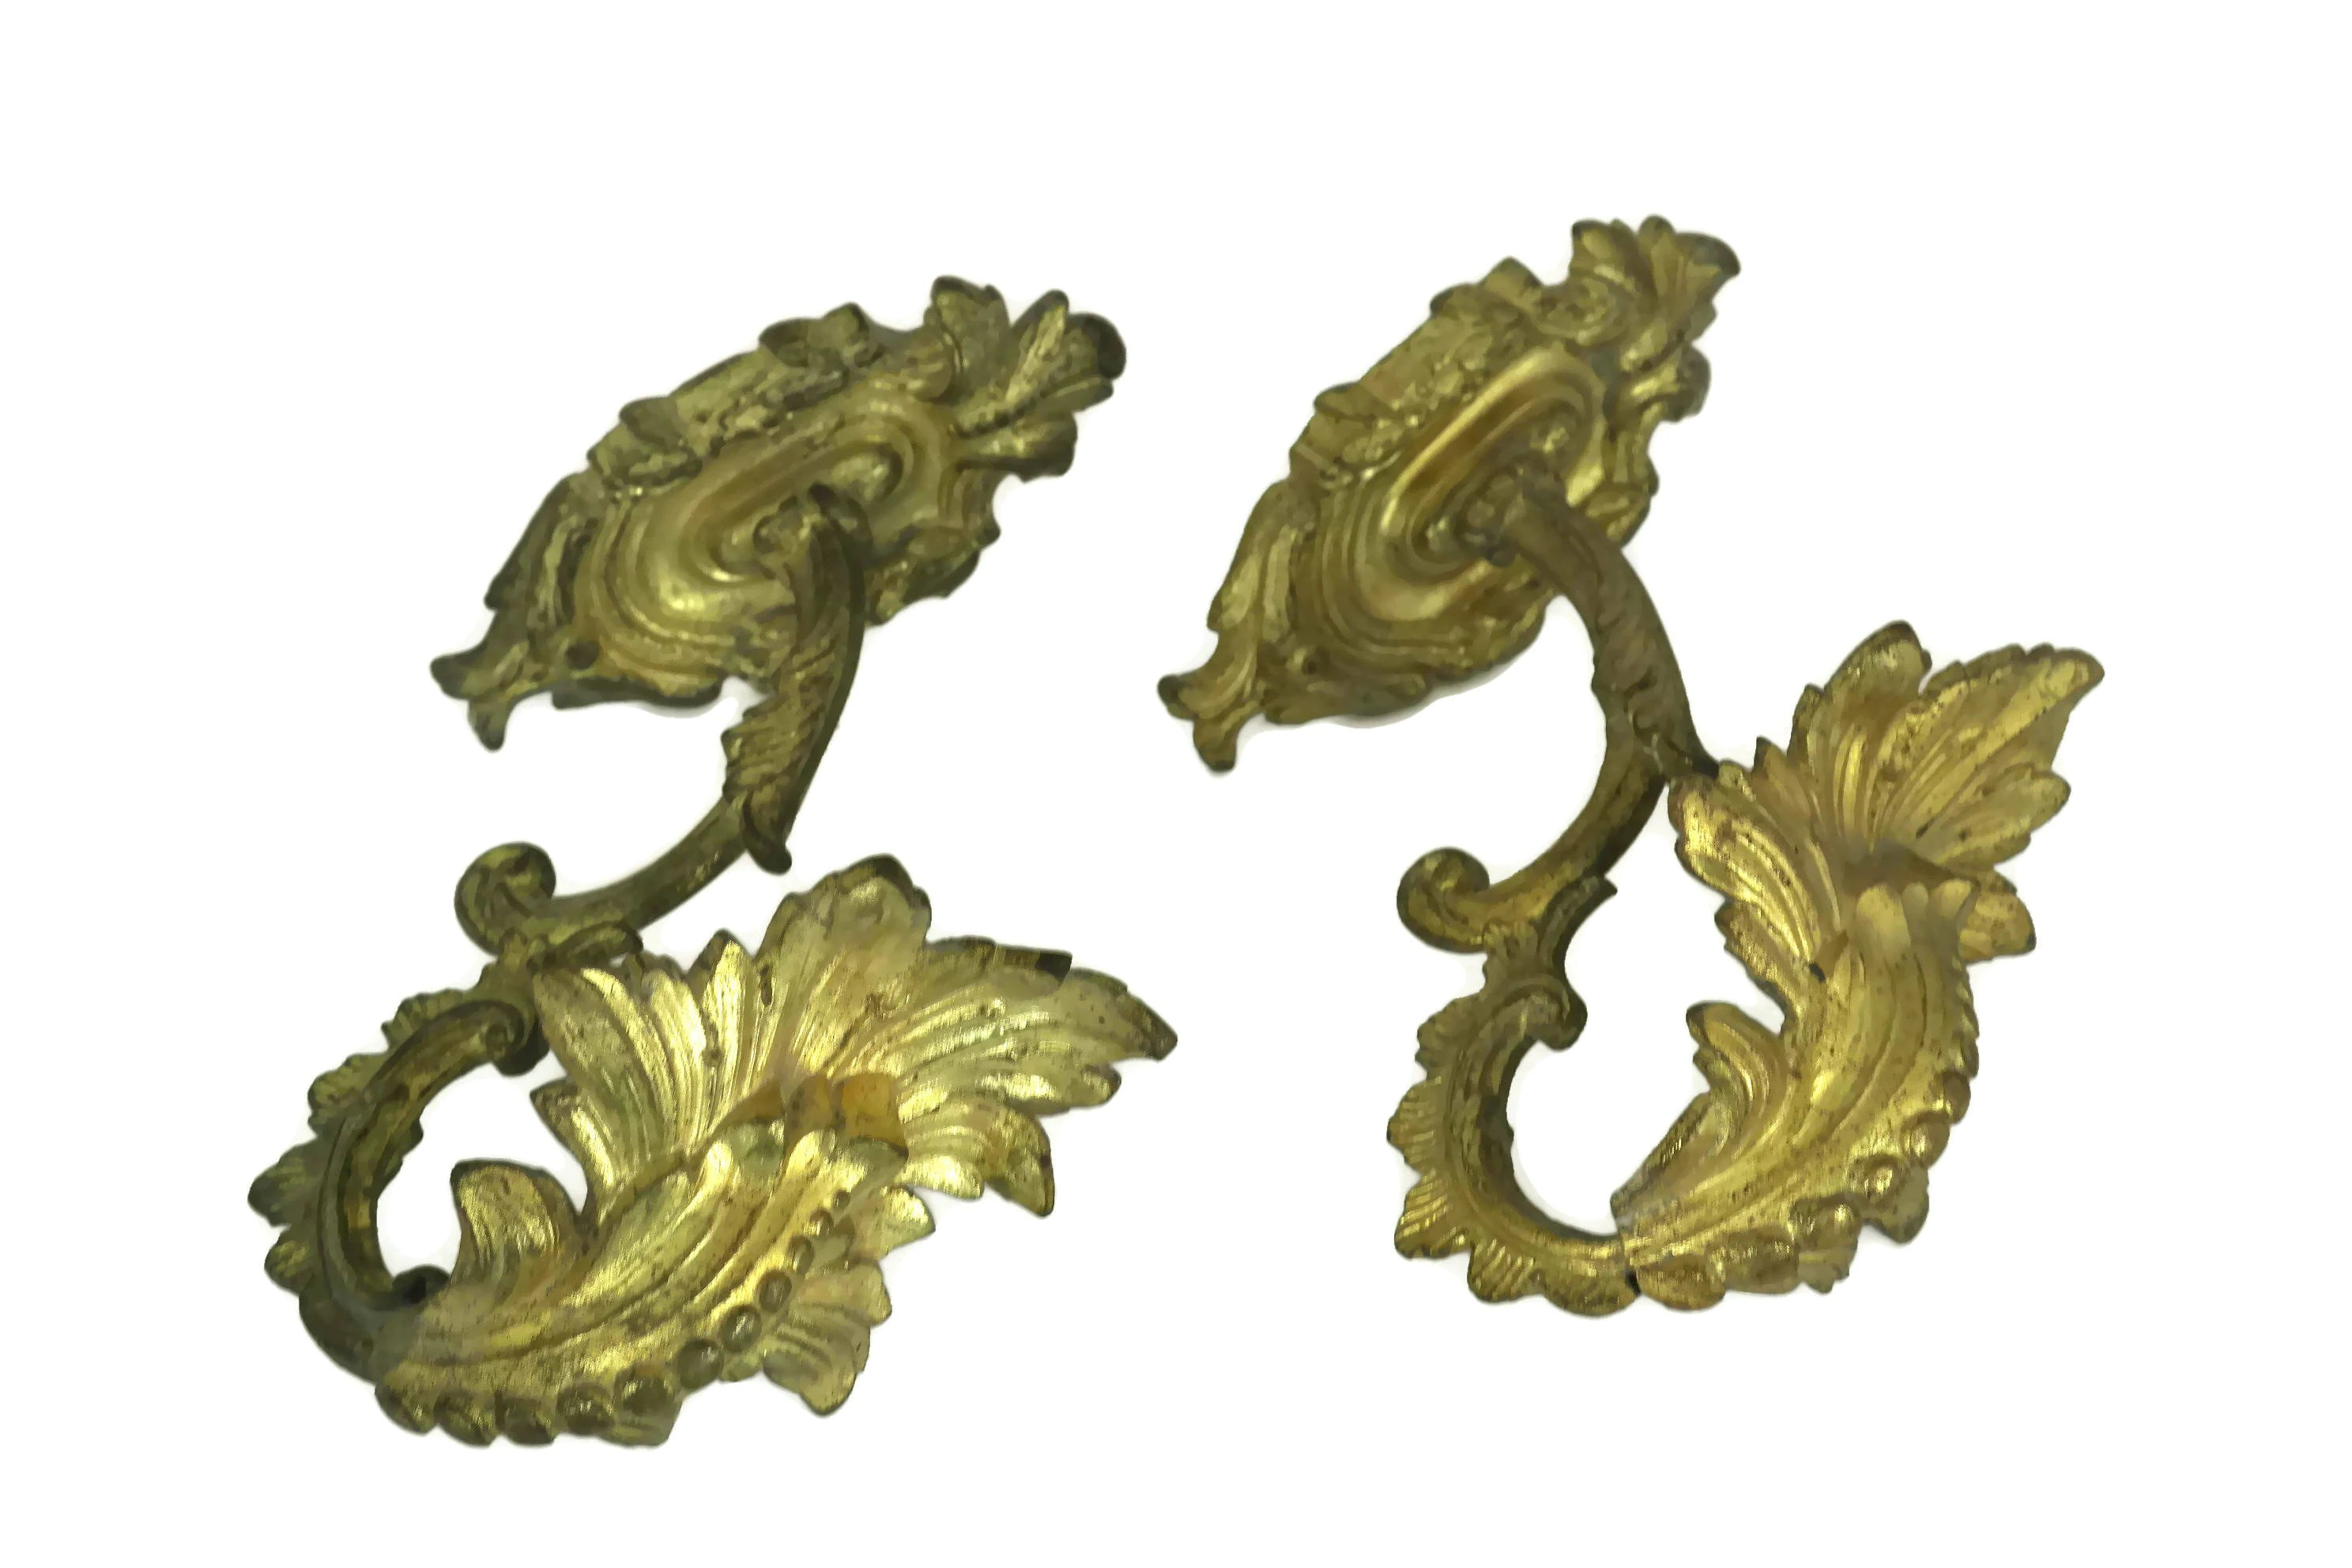 Antique Bronze Curtain Tie Backs Large Antique French Gilt Bronze Curtain Tie Backs Pair Of Rococo